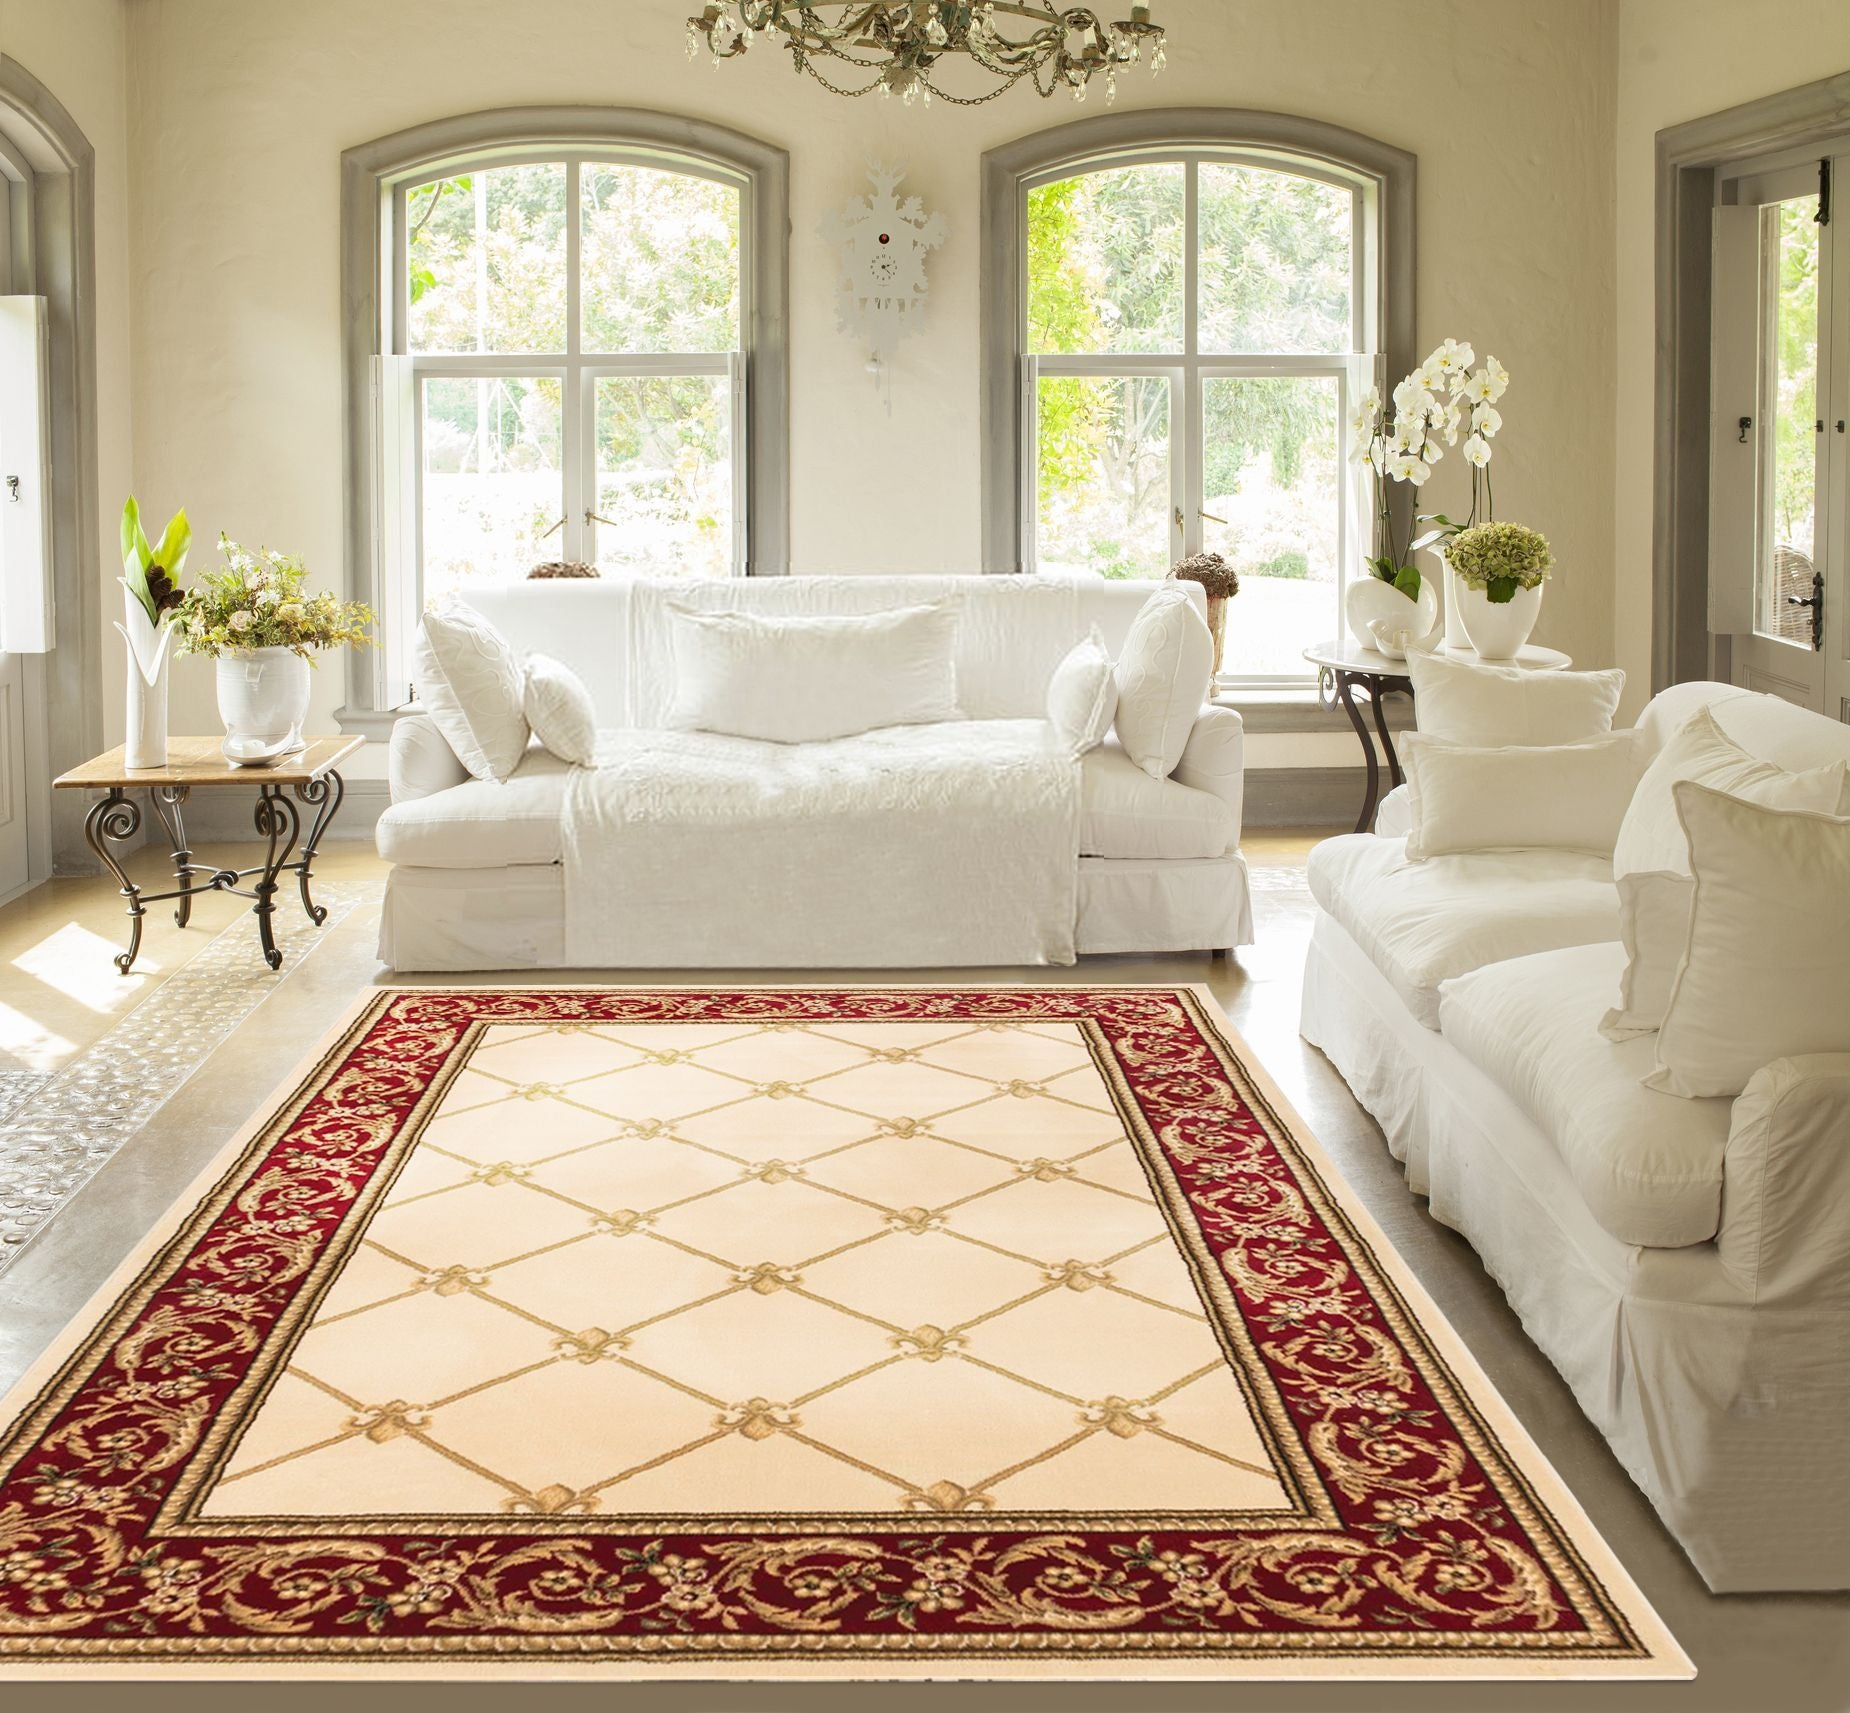 Patrician Trellis Ivory French European Formal Traditional Area Rug Easy To Clean Stain Fade Resistant Shed Free Modern Contemporary Floral Transitional